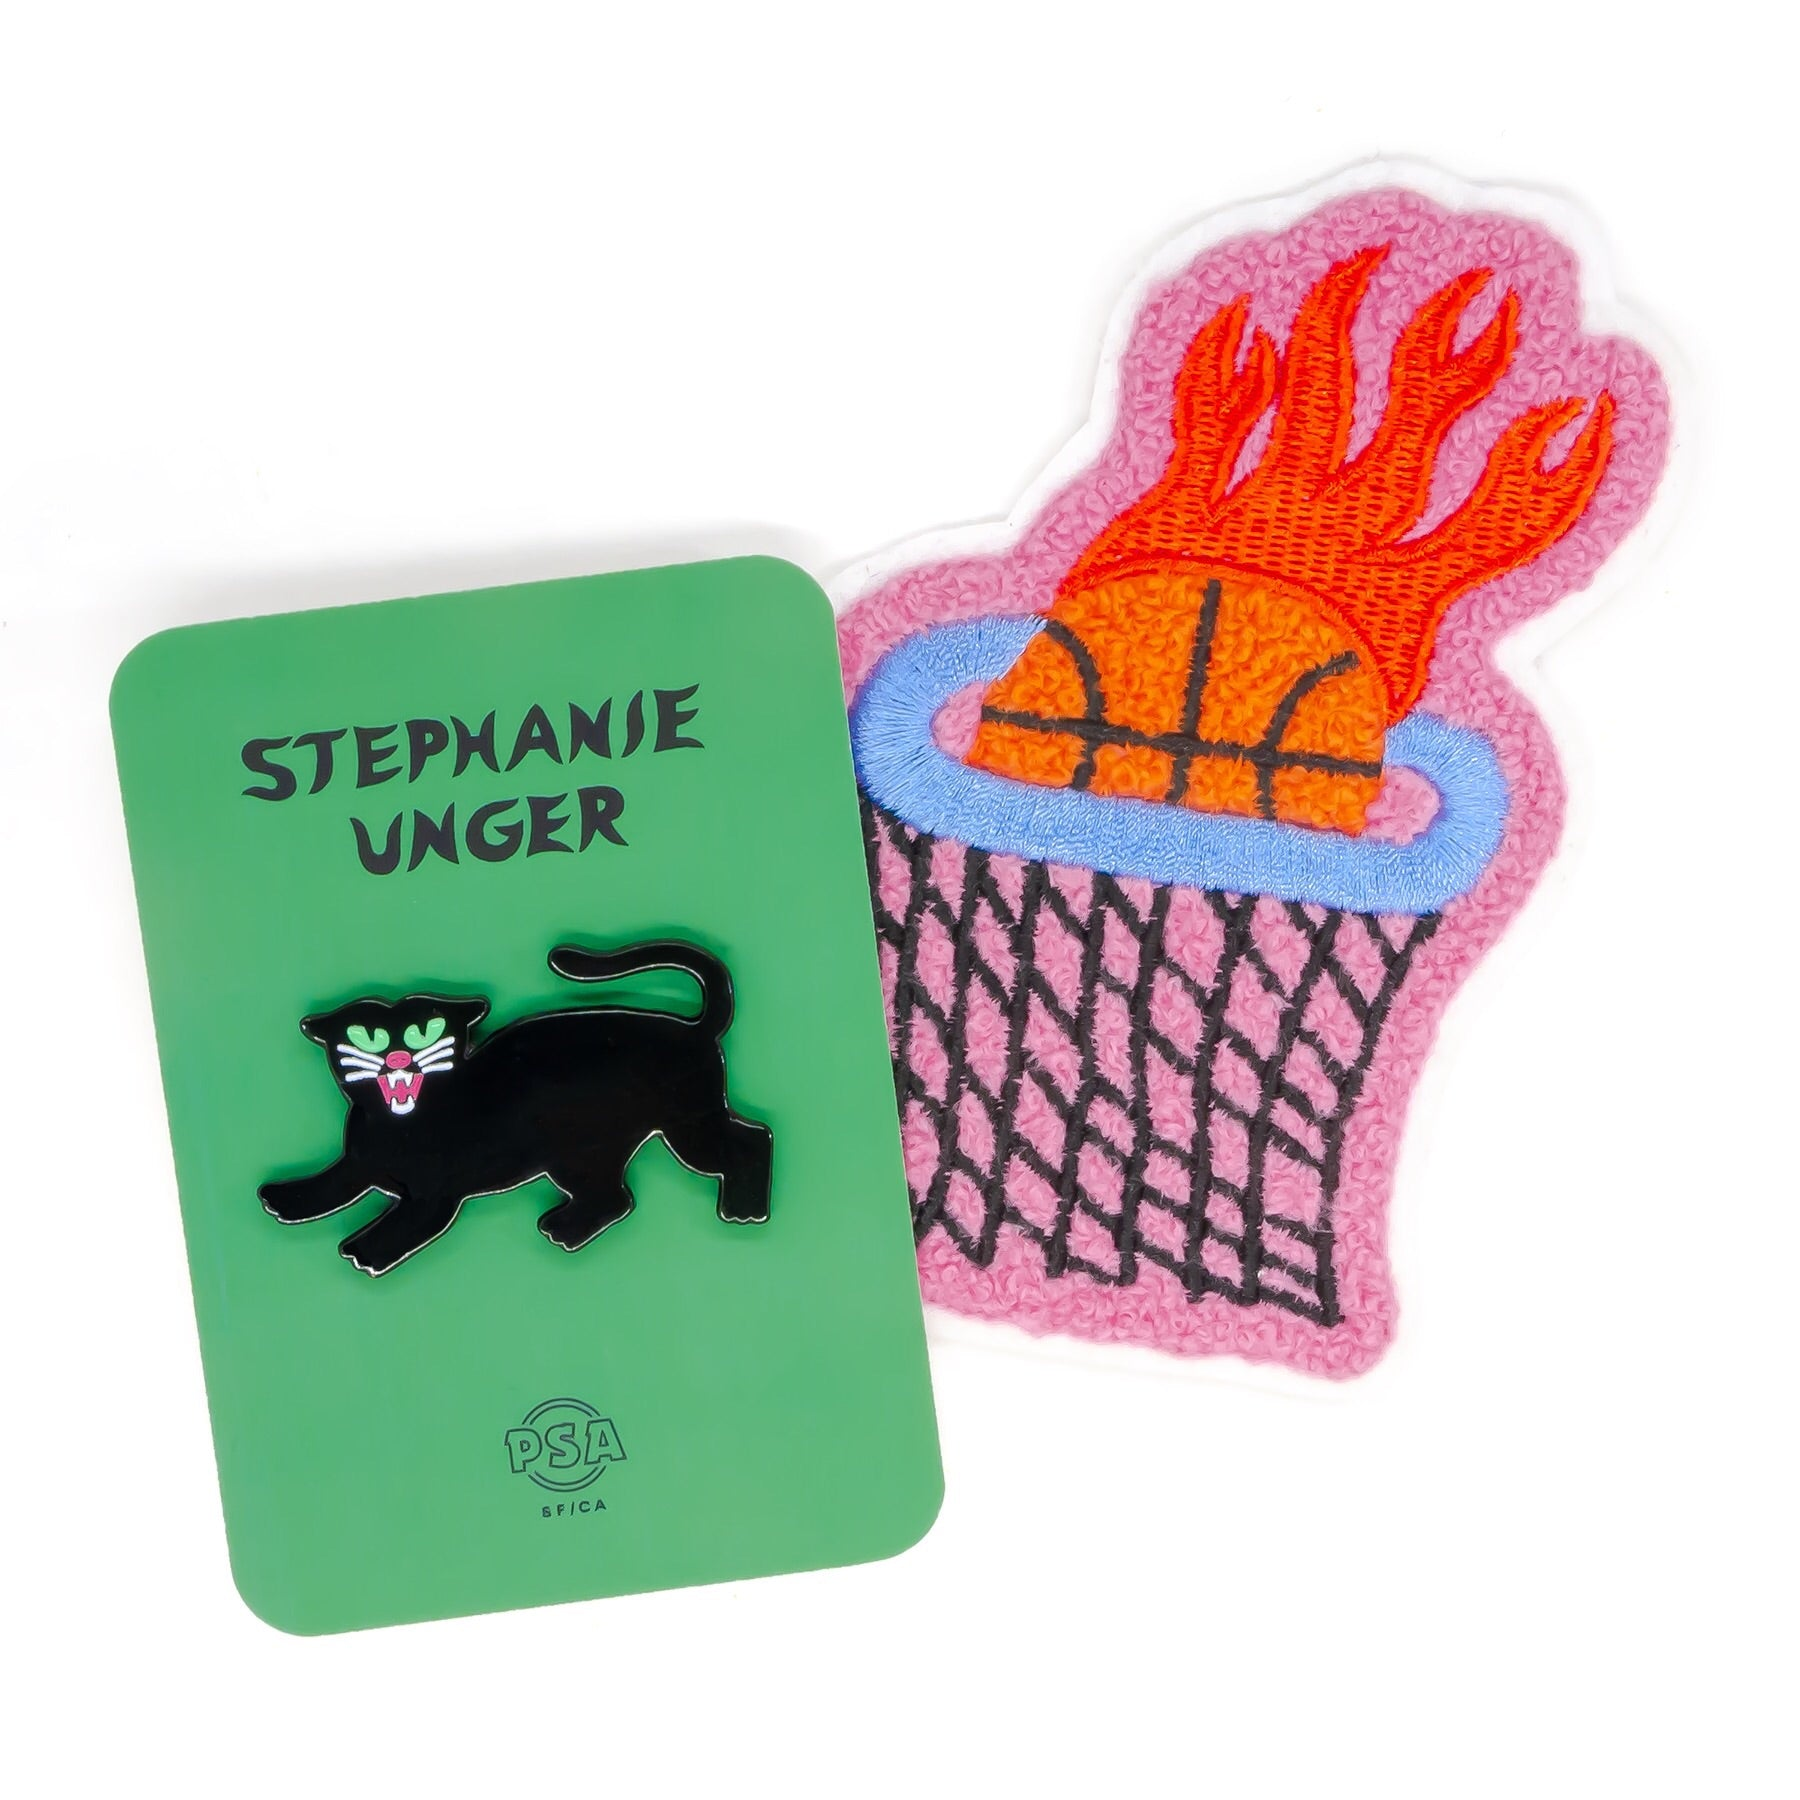 Stephanie Unger pin and patch set